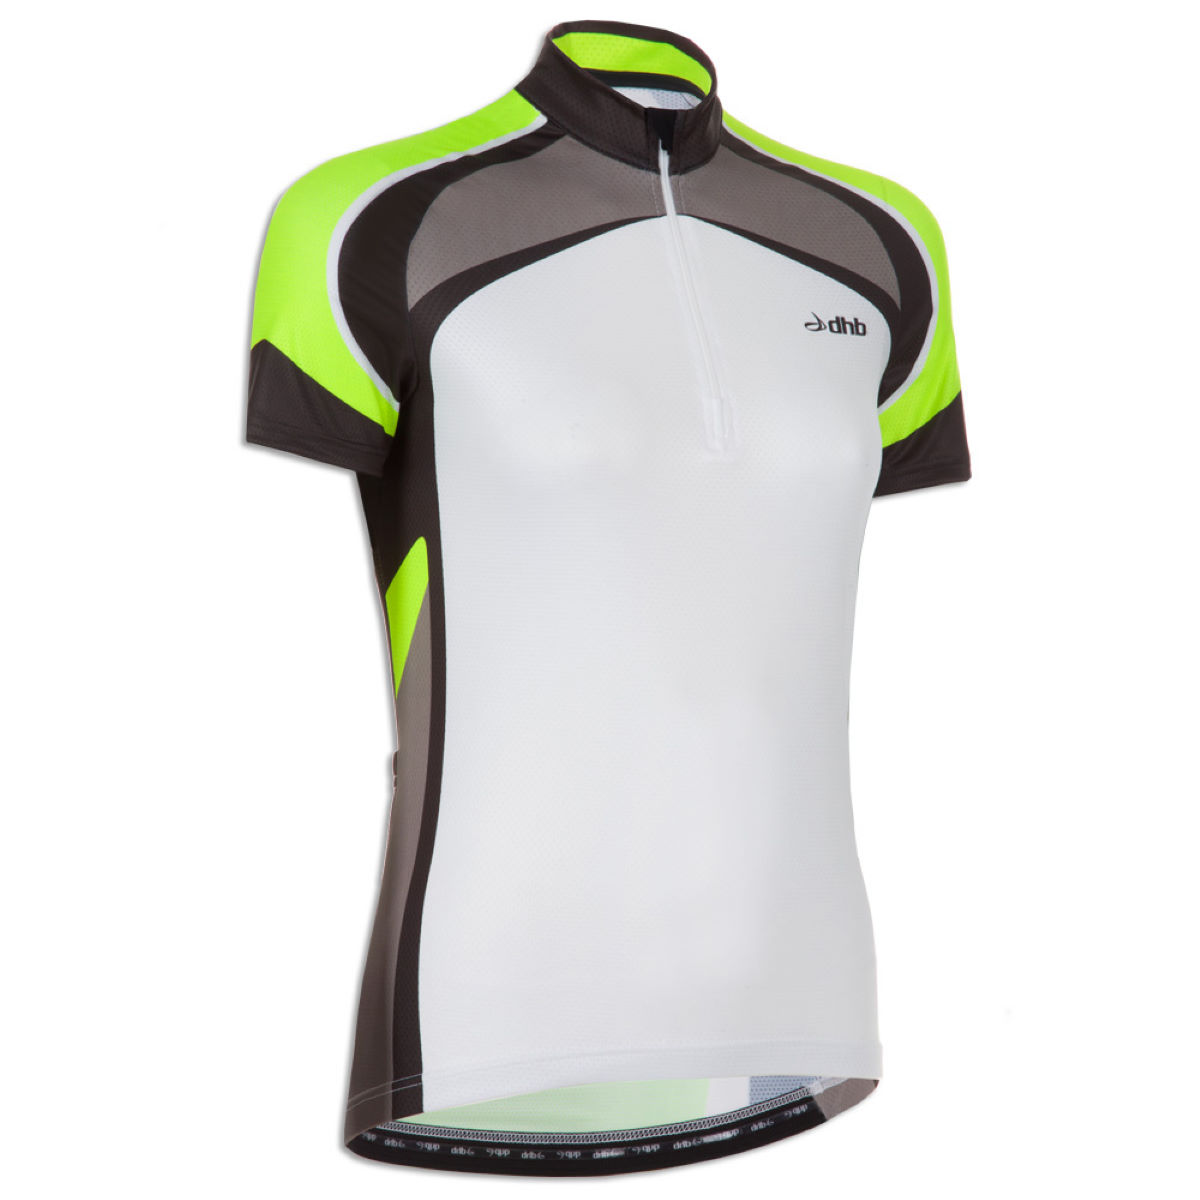 dhb Women's Chase Short Sleeve Fluro Cycling Jersey